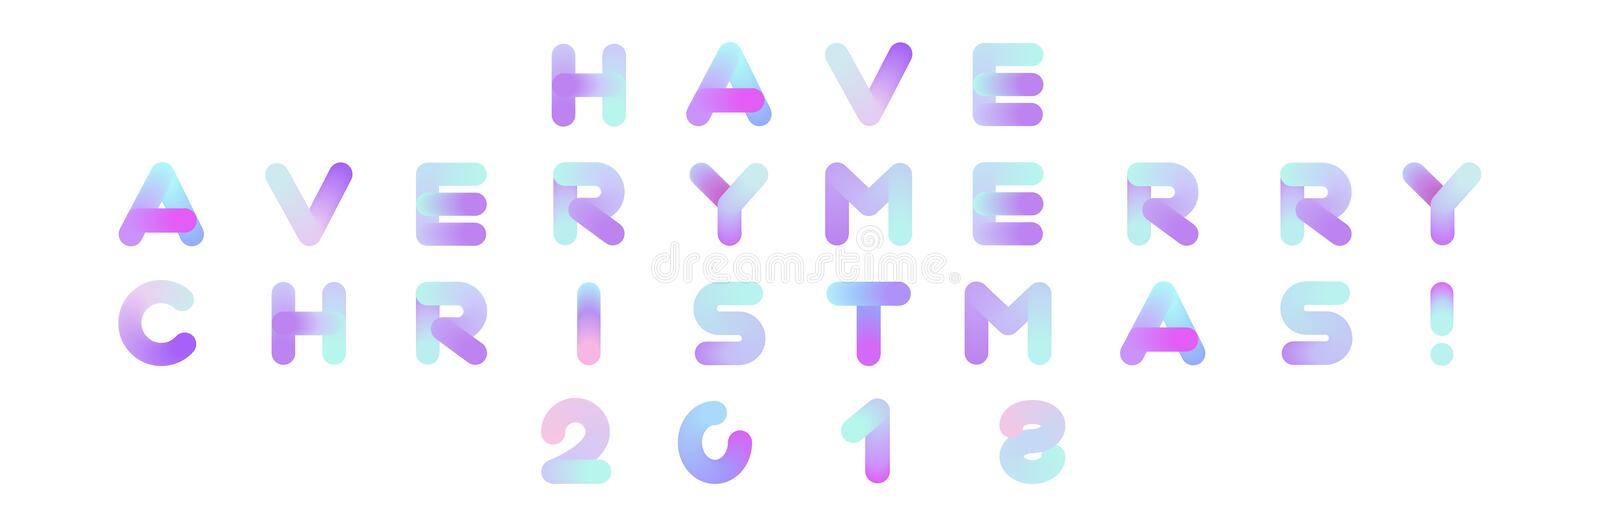 Have a Very Merry Christmas 2018 Vector Text. Xmas Typography. stock illustration